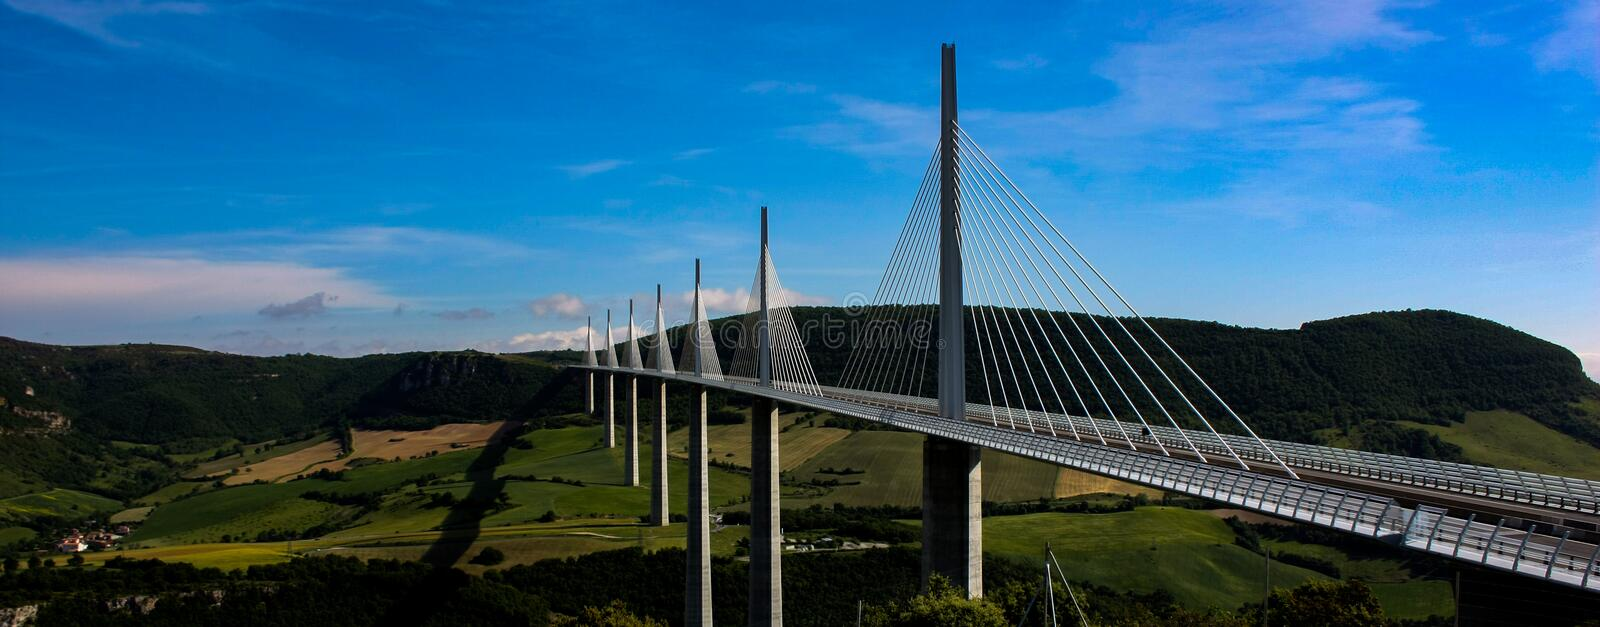 Millau Viaduct, the tallest bridge in Europe panoramic view. Aveyron, travel, structure, highest, suspended, exterior, landmark, valley, highway, construction stock images